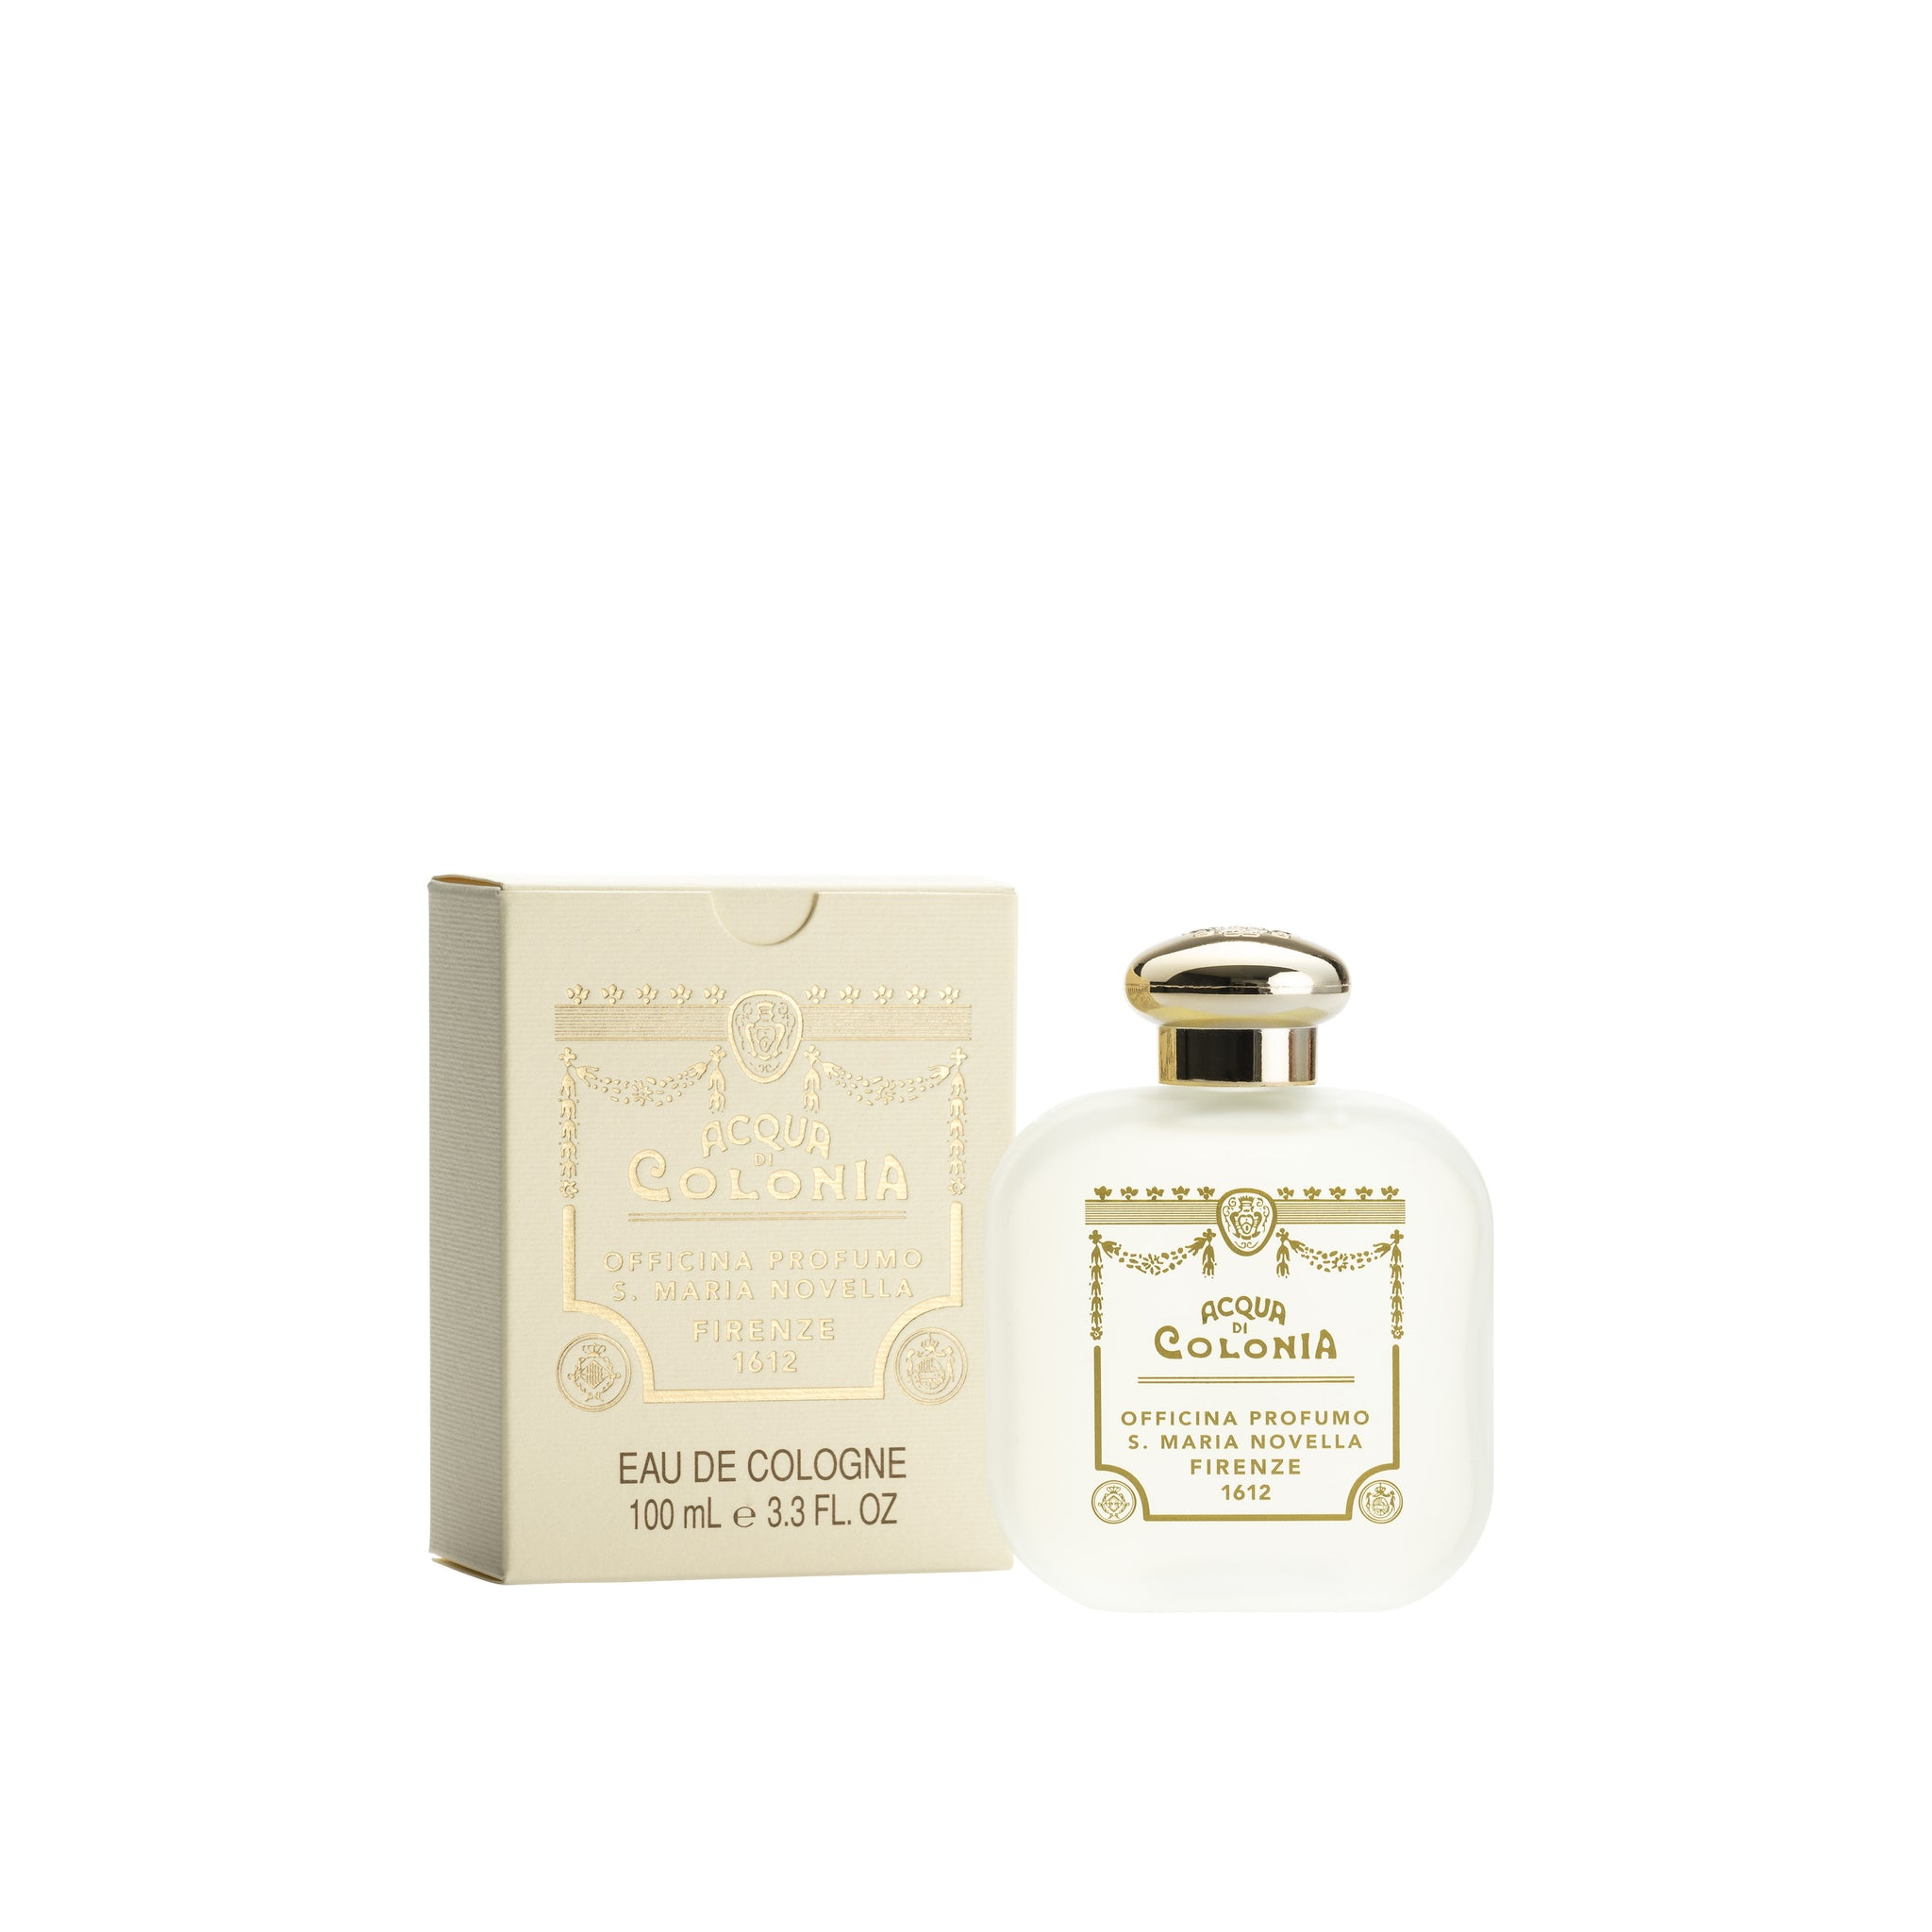 Cologne - Lily of the Valley (Mughetto), 100ml